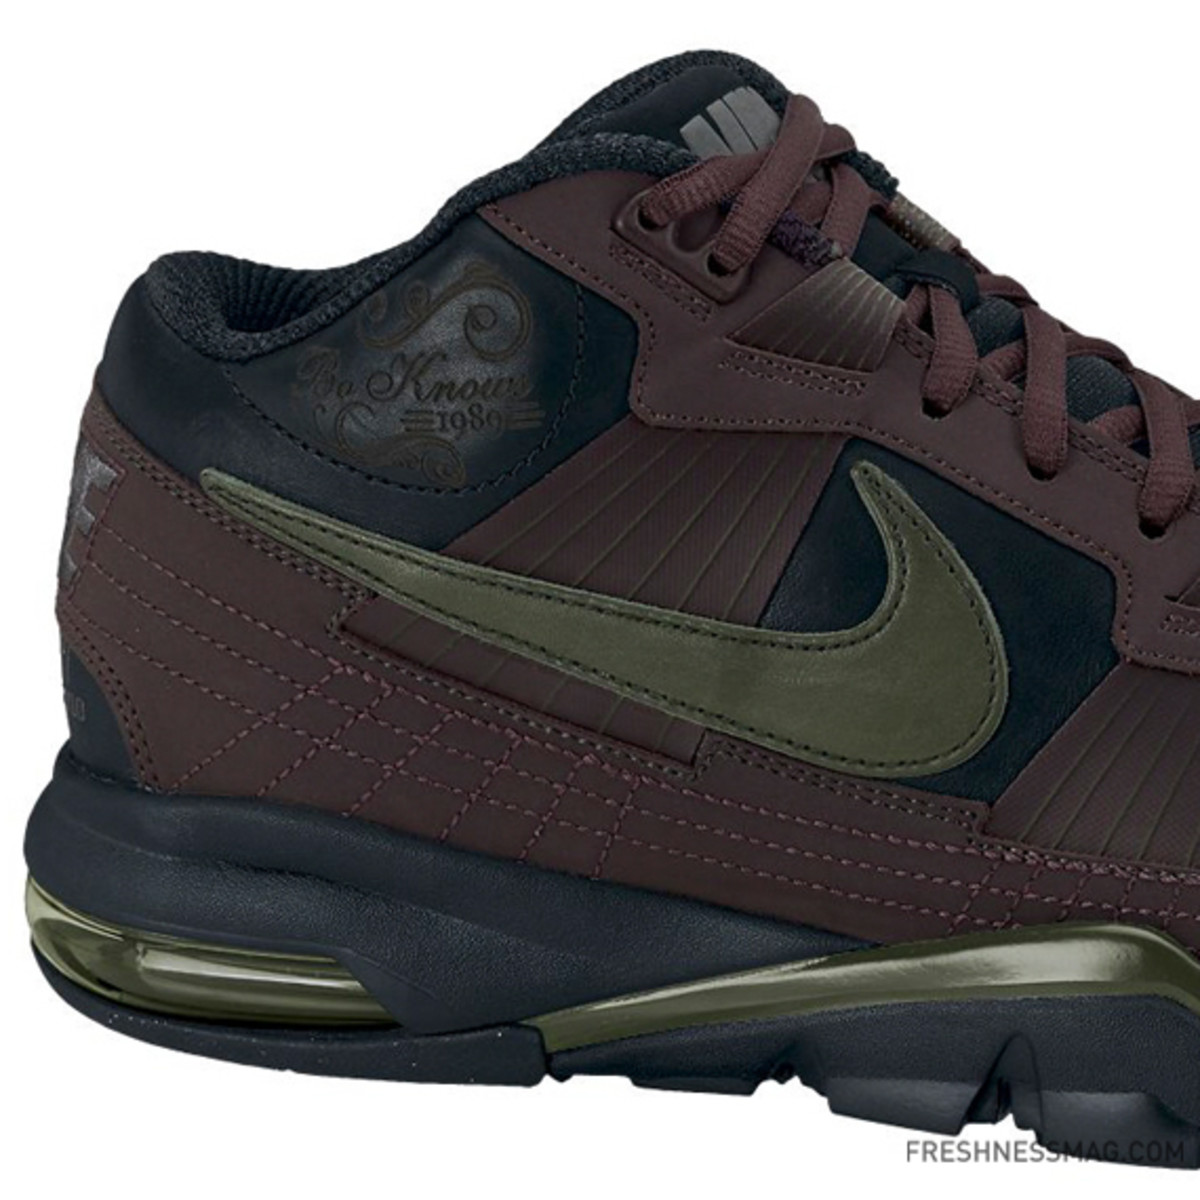 nike-trainer-sc-2010-premium-bo-knows-pack-14